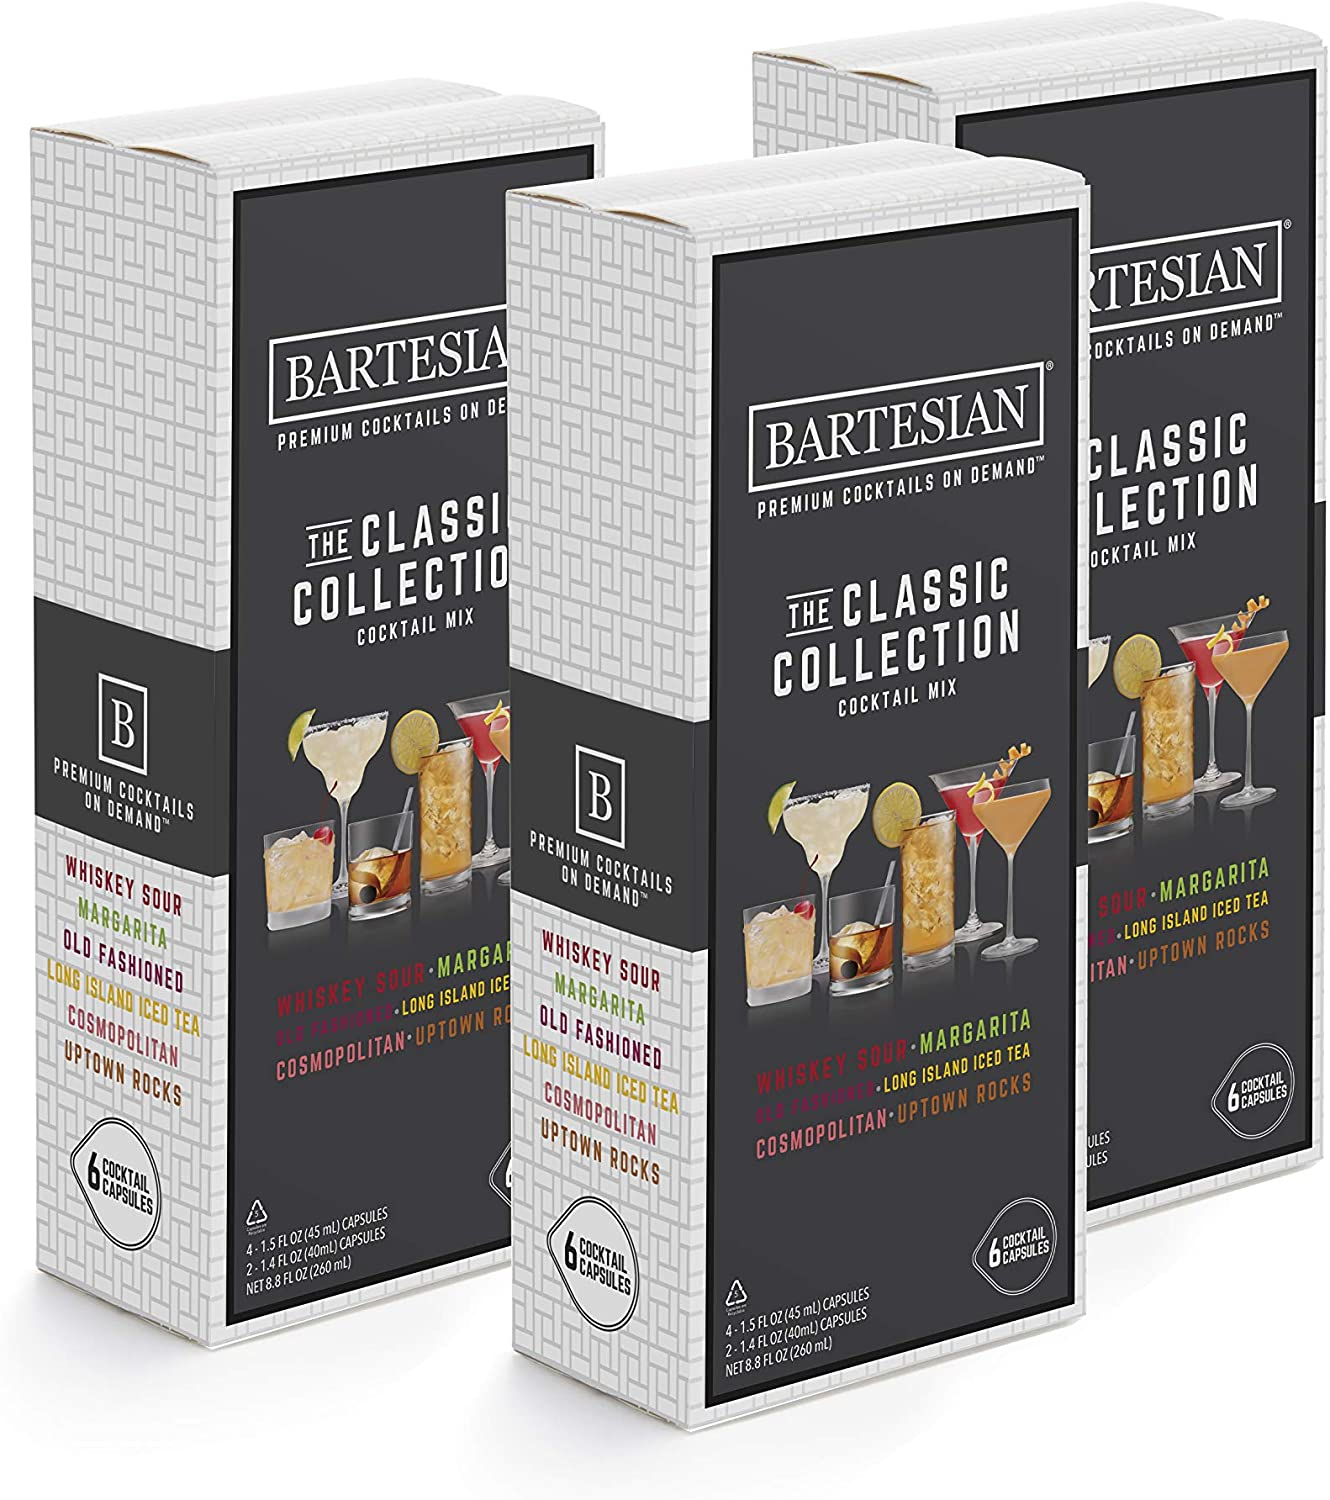 Bartesian The Classic Collection Cocktail Mixer Capsules, Variety Pack of 18 Cocktail Capsules, for Bartesian Premium Cocktail Maker (55401)